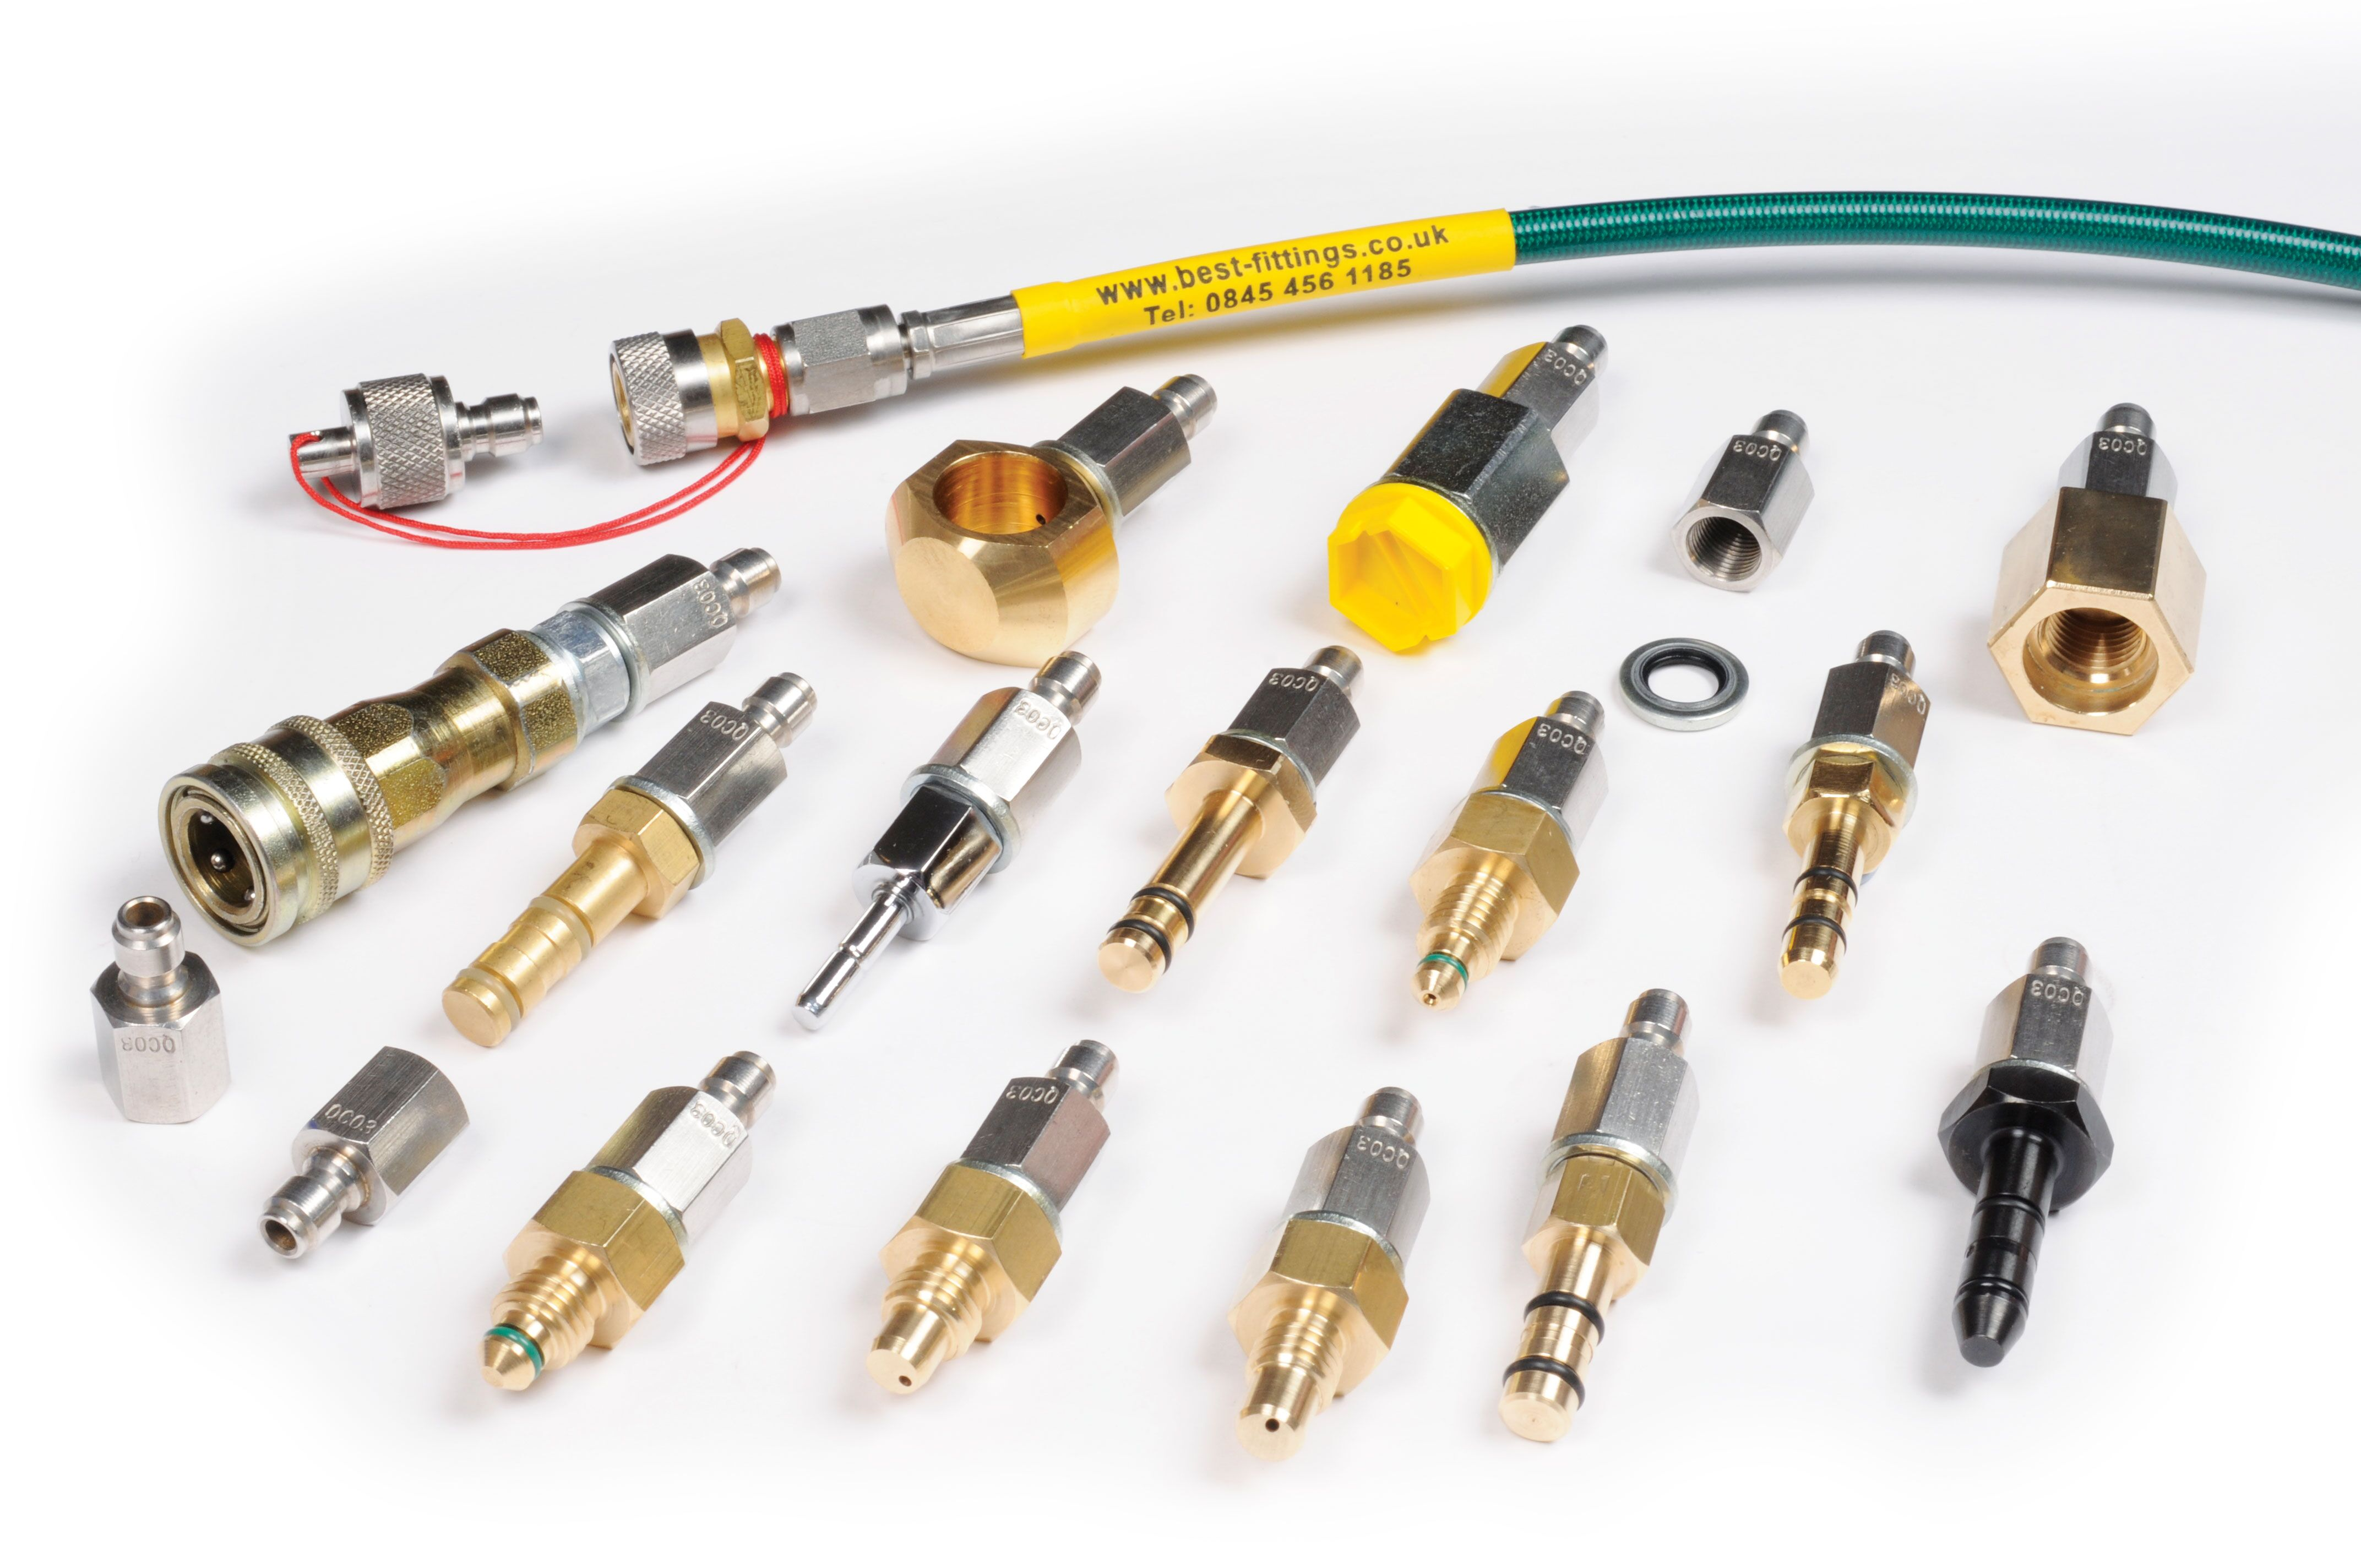 BEST Fittings Quick Coupler Starter Kits Bundles with EXTRA Plugs SAVE MONEY